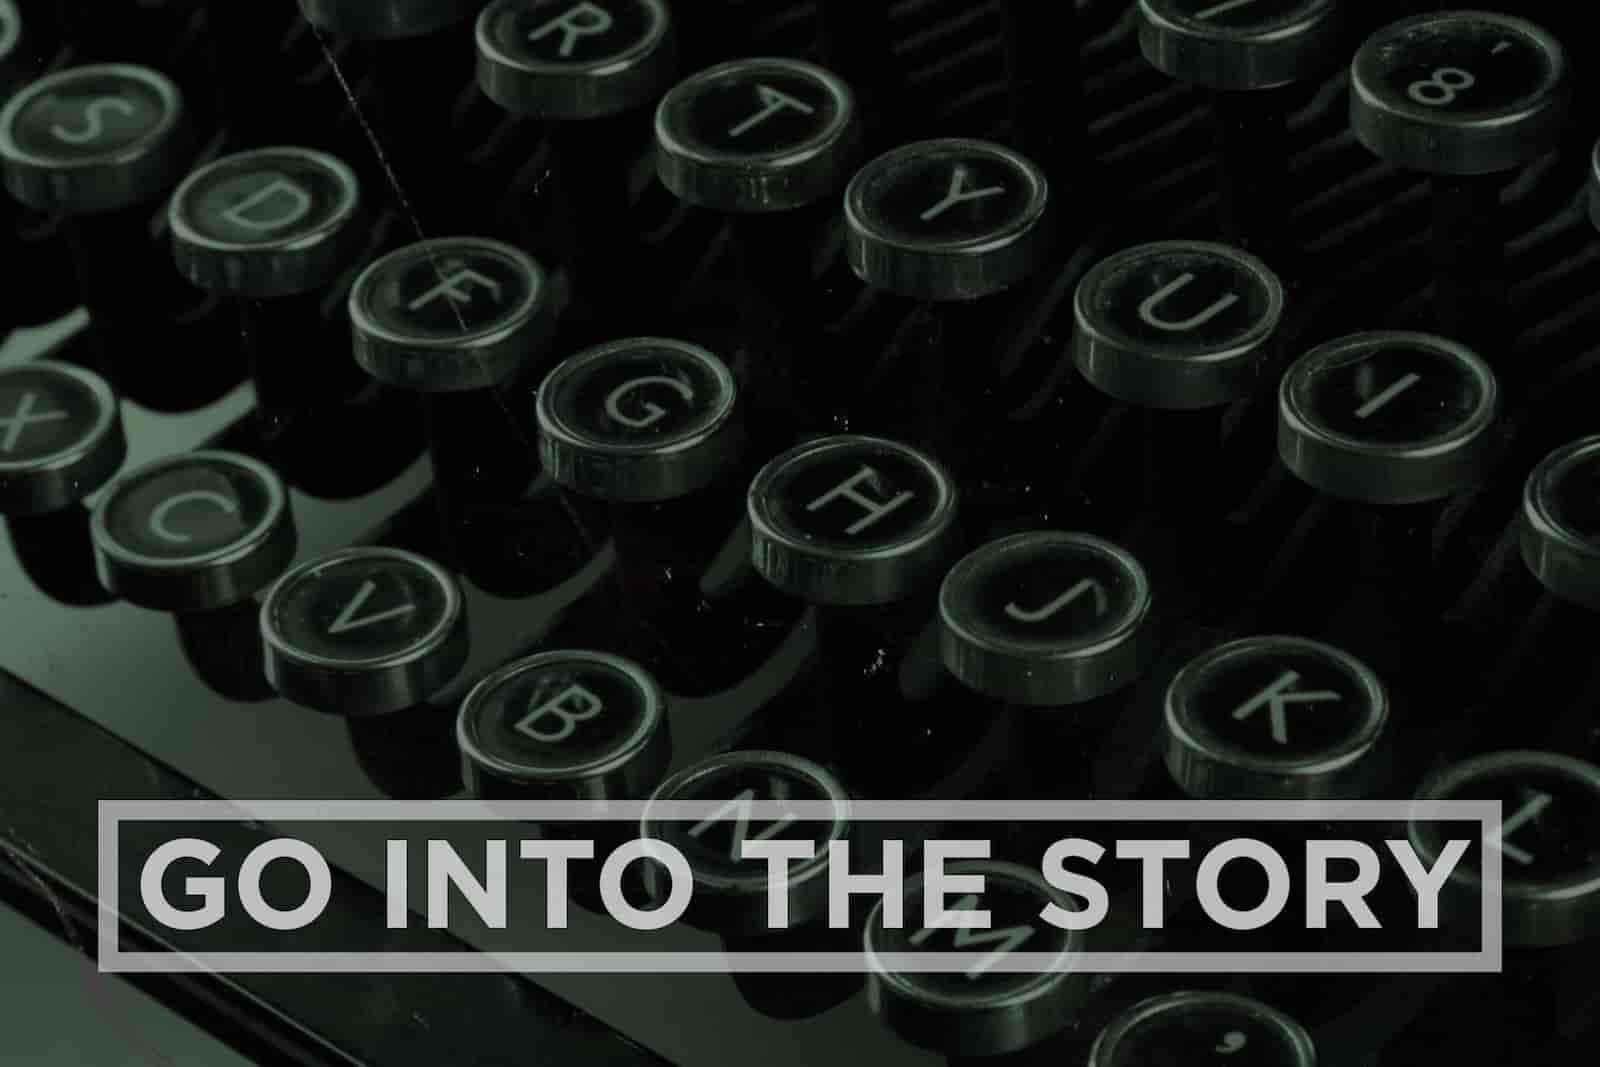 Best Screenwriting Website - Script Writers - Go Into The Story